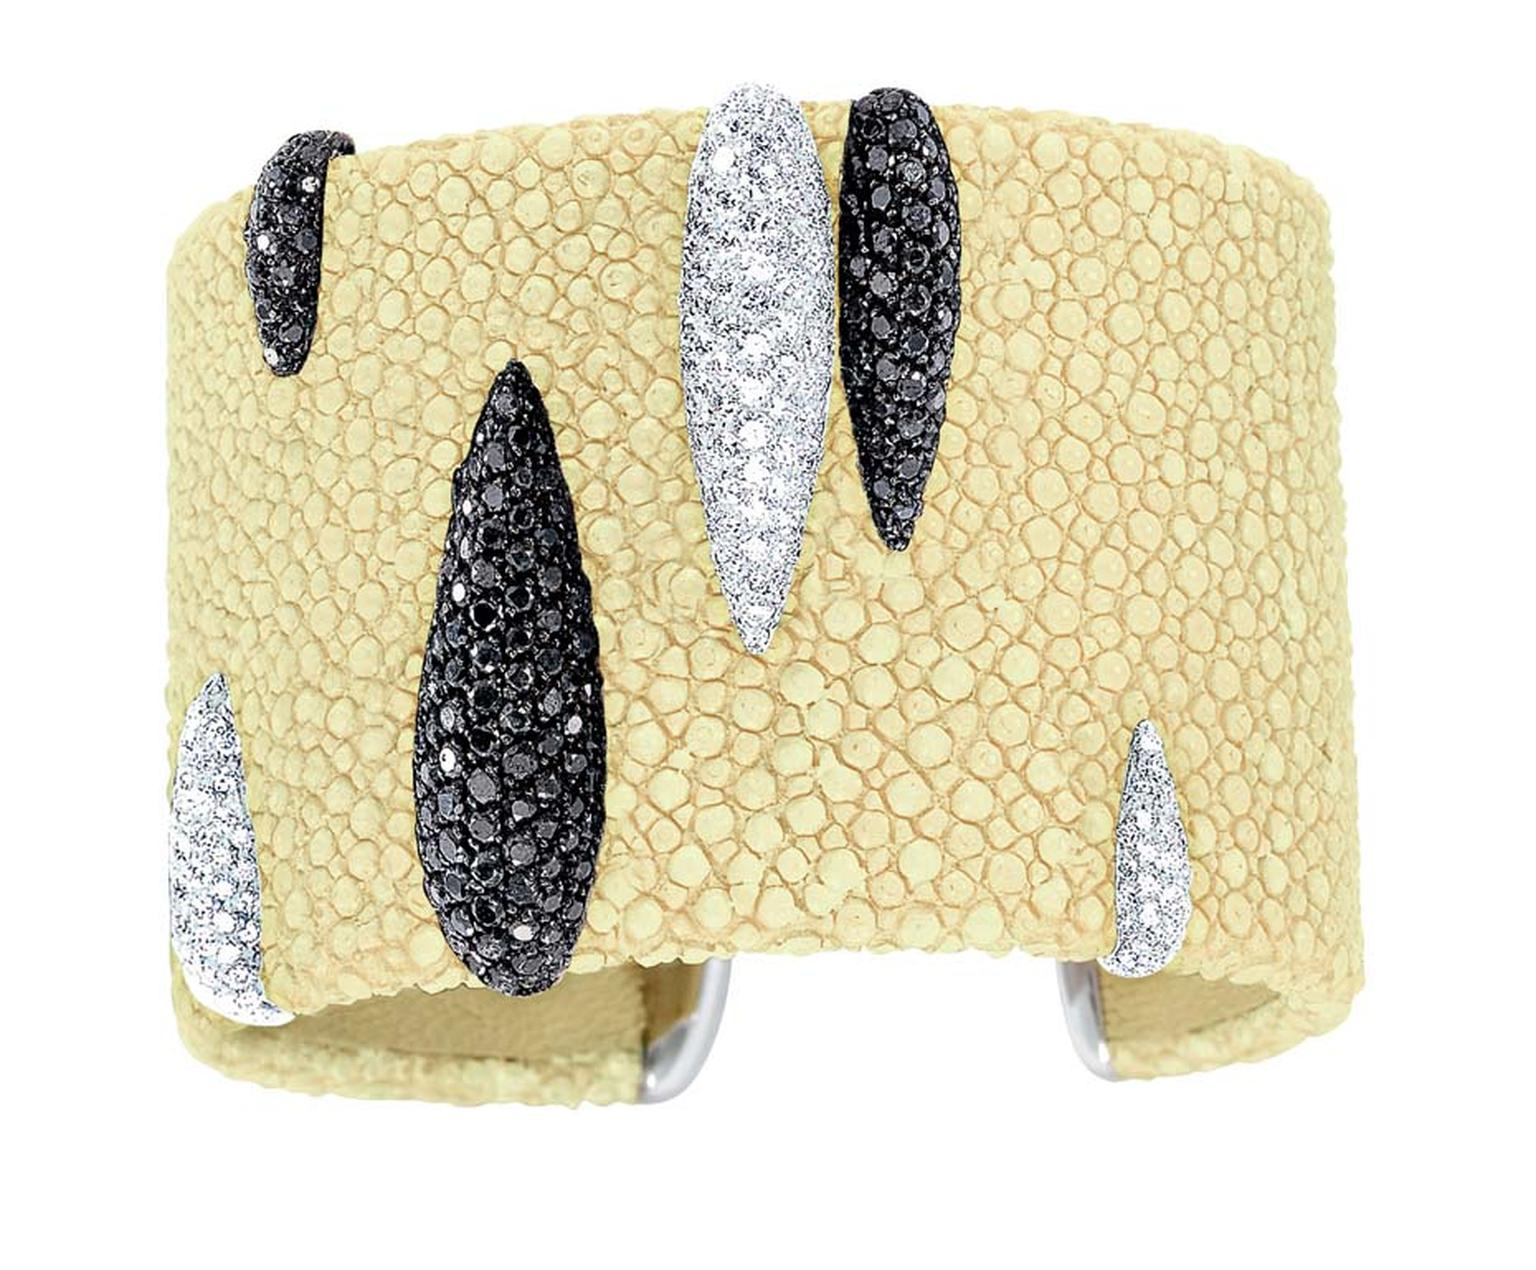 de GRISOGONO Stingray cuff with white and black diamonds, as worn by Cara Delevingne